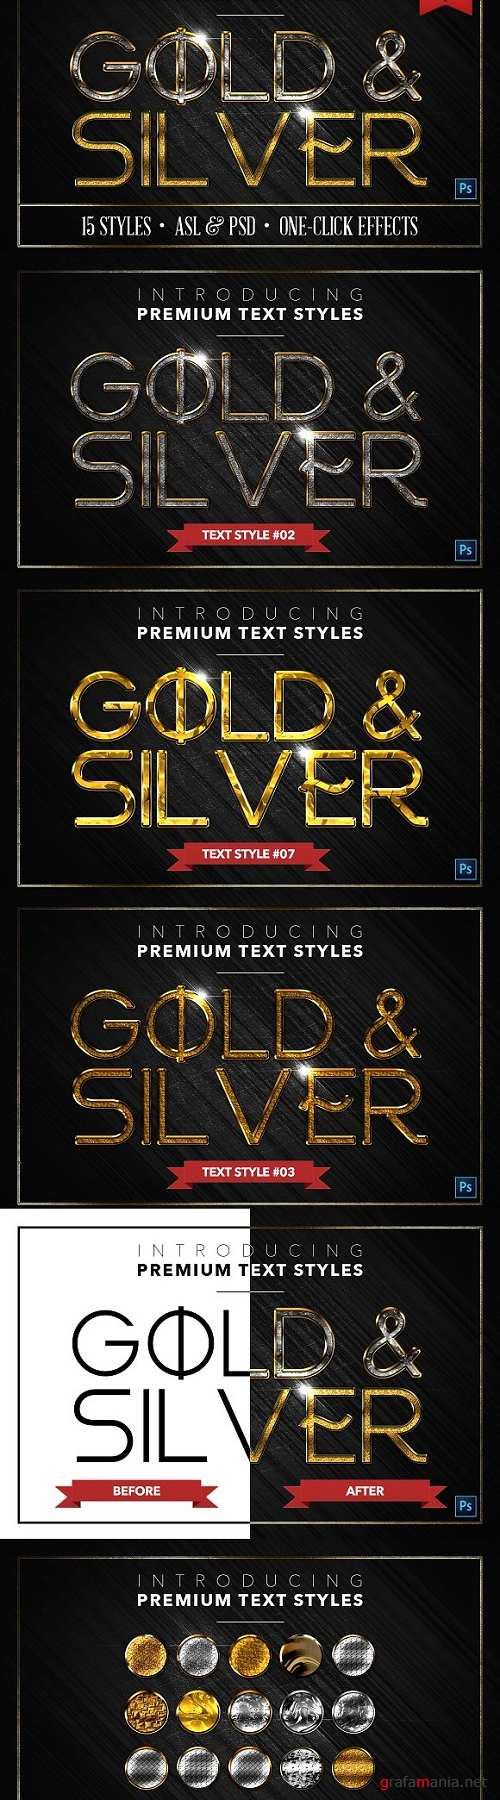 Gold & Silver #5 - 15 Text Styles